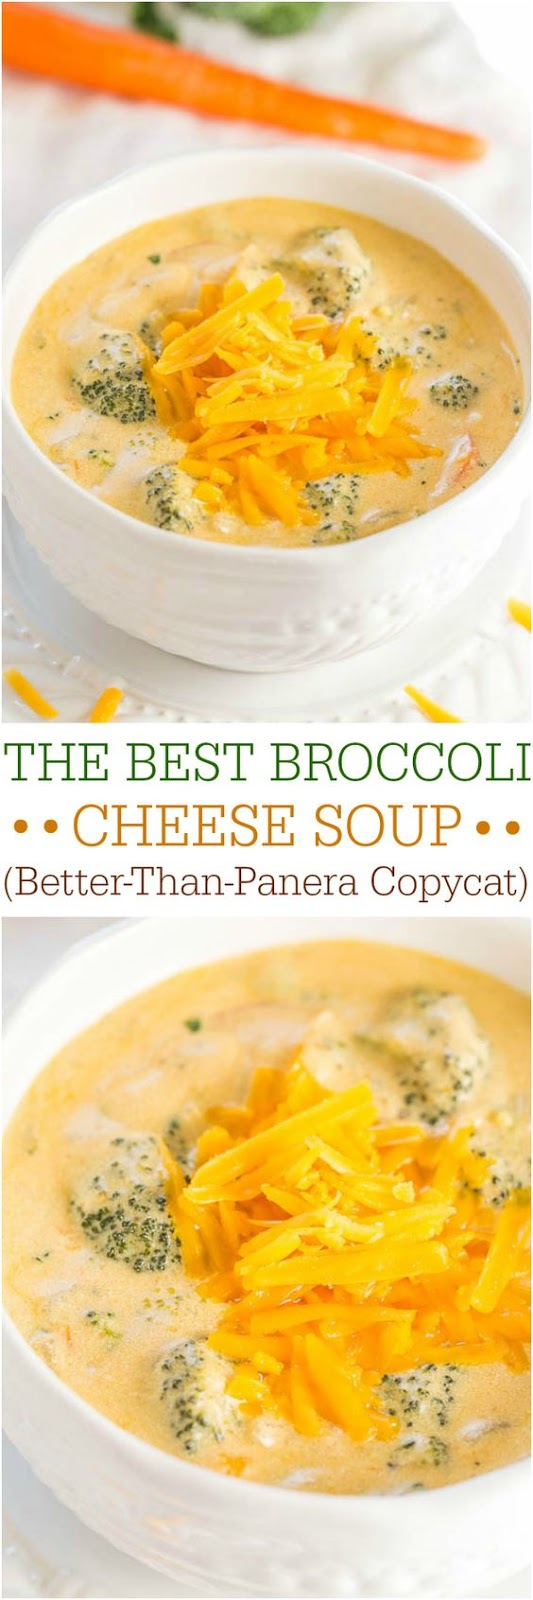 The Best Broccoli Cheese Soup (Better-Than-Panera Copycat) #The_Best #Broccoli #Cheese #Soup #DESSERTS #HEALTHYFOOD #EASY_RECIPES #DINNER #LAUCH #DELICIOUS #EASY #HOLIDAYS #RECIPE #SPECIAL_DIET #WORLD_CUISINE #CAKE #GRILL #APPETIZERS #HEALTHY_RECIPES #DRINKS #COOKING_METHOD #ITALIAN_RECIPES #MEAT #VEGAN_RECIPES #COOKIES #PASTA #FRUIT #SALAD #SOUP_APPETIZERS #NON_ALCOHOLIC_DRINKS #MEAL_PLANNING #VEGETABLES #SOUP #PASTRY #CHOCOLATE #DAIRY #ALCOHOLIC_DRINKS #BULGUR_SALAD #BAKING #SNACKS #BEEF_RECIPES #MEAT_APPETIZERS #MEXICAN_RECIPES #BREAD #ASIAN_RECIPES #SEAFOOD_APPETIZERS #MUFFINS #BREAKFAST_AND_BRUNCH #CONDIMENTS #CUPCAKES #CHEESE #CHICKEN_RECIPES #PIE #COFFEE #NO_BAKE_DESSERTS #HEALTHY_SNACKS #SEAFOOD #GRAIN #LUNCHES_DINNERS #MEXICAN #QUICK_BREAD #LIQUOR